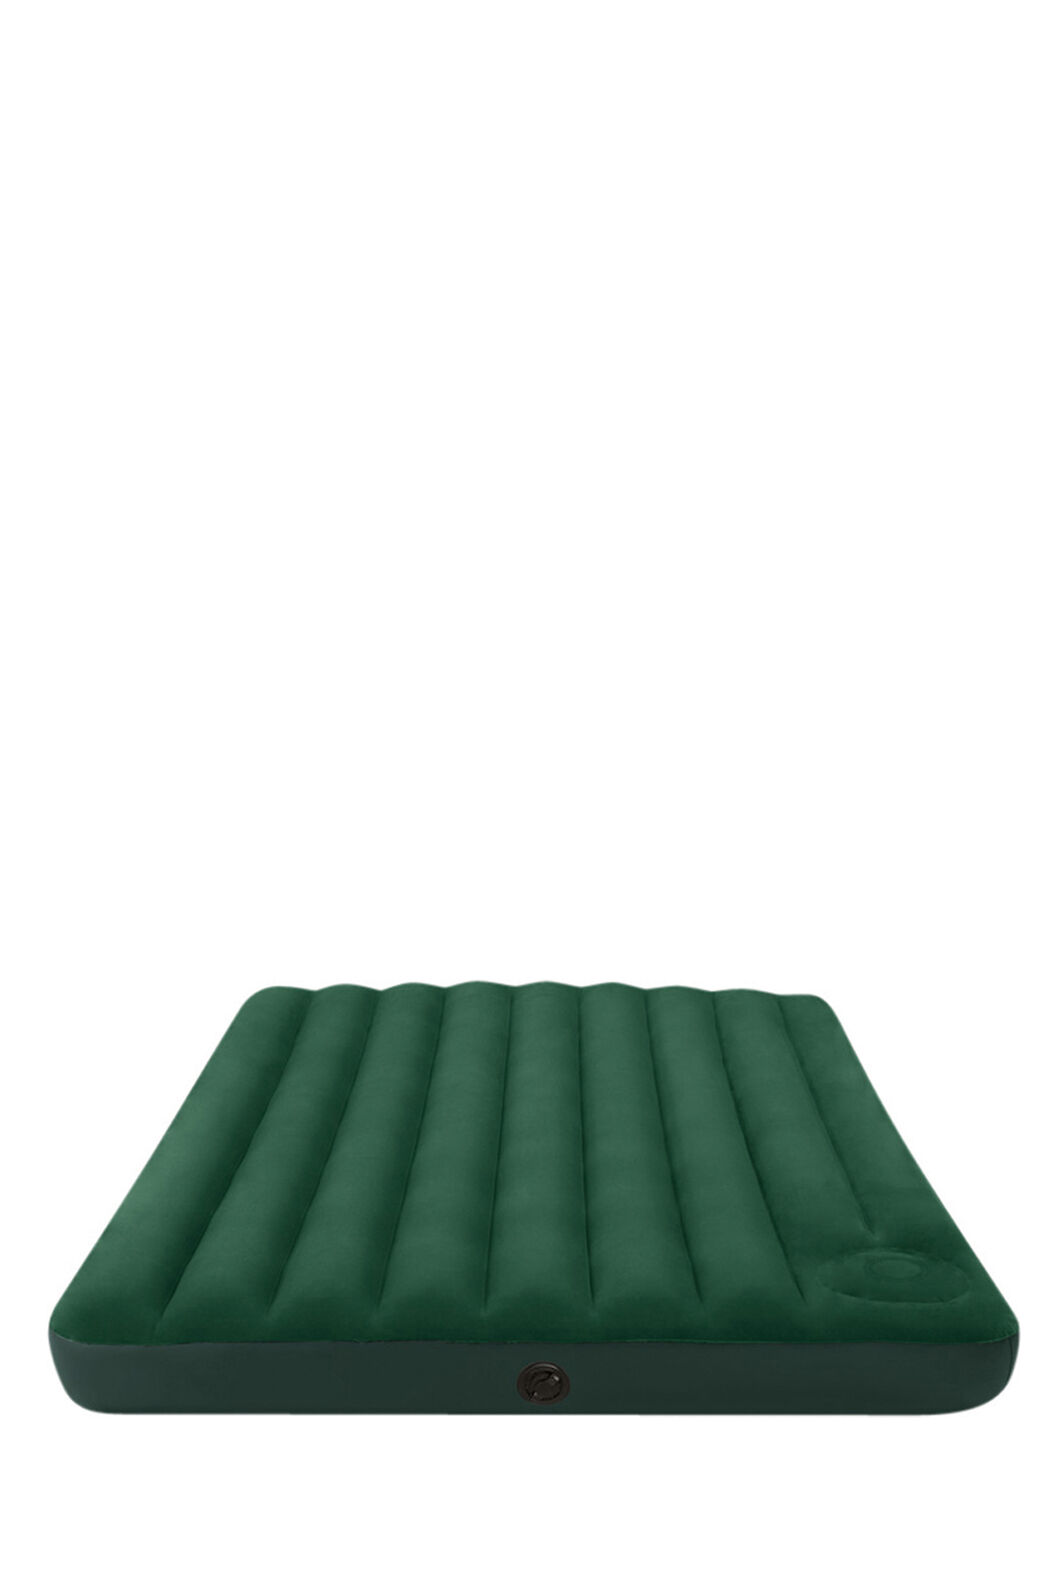 Intex Queen Downy Air Bed with Foot Pump, None, hi-res